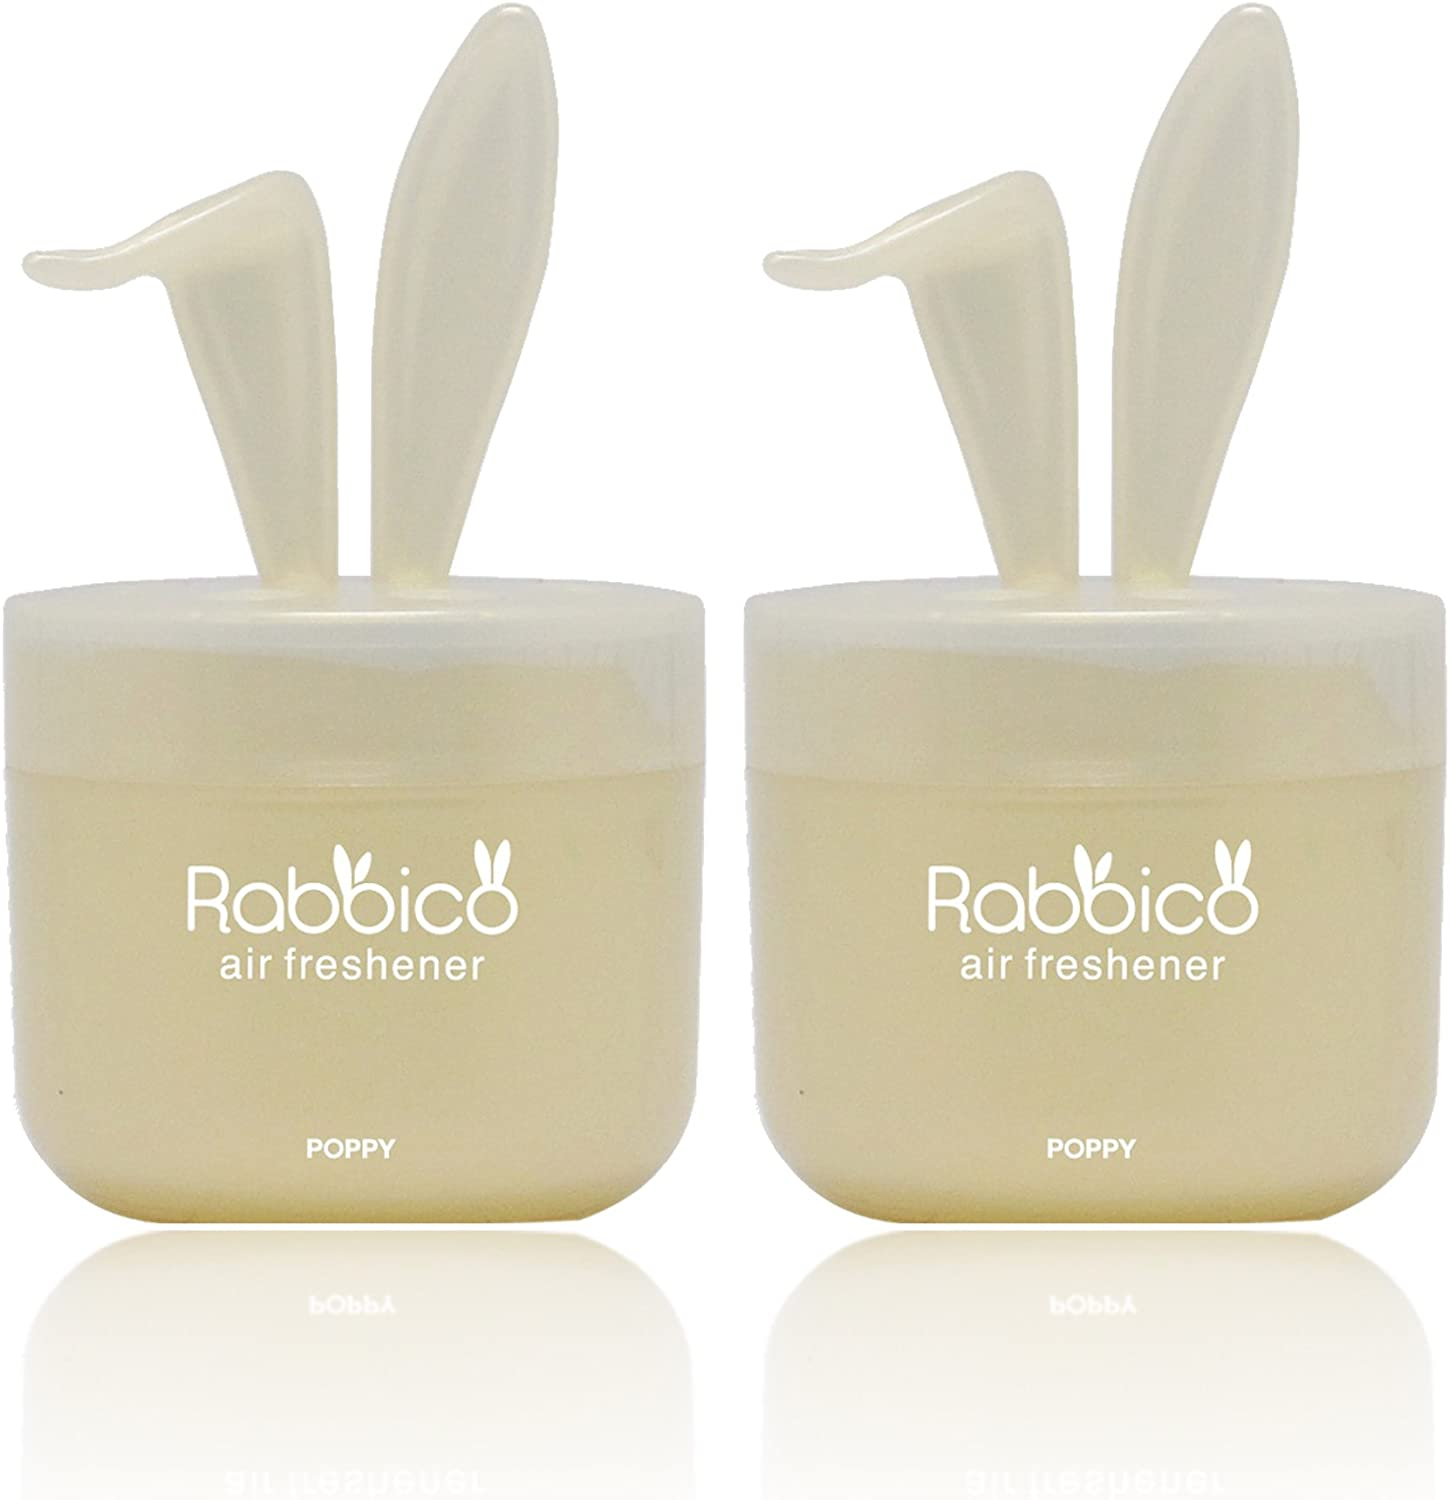 High Premium Quality RABBICO Sweet 2 Packs (Rabbit Lovely Ears Shape) Car, Home, Office Air Freshener White Musk Scent - Beautiful Mix of Floral Fruity Musk fragrances